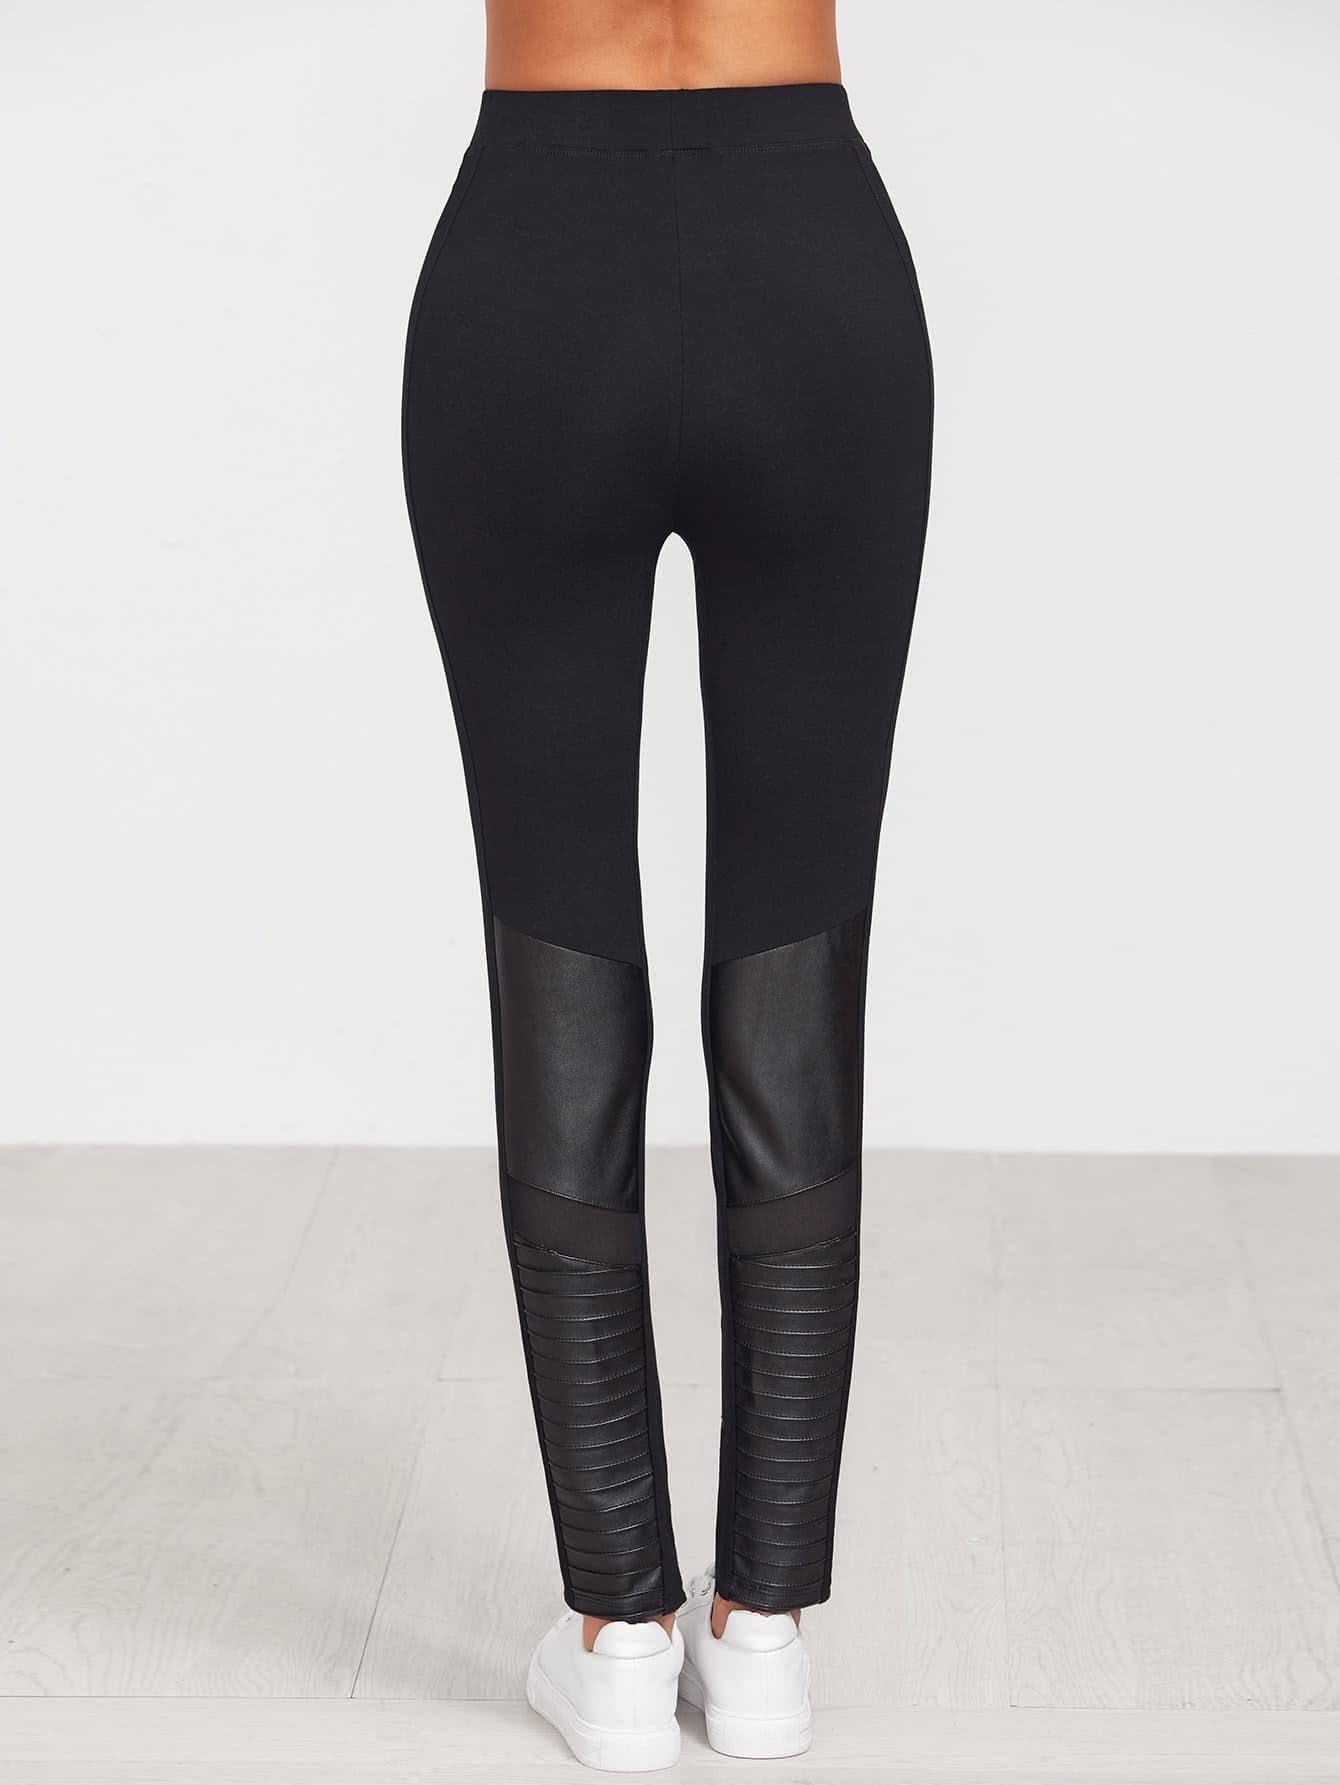 leggings161229706_2